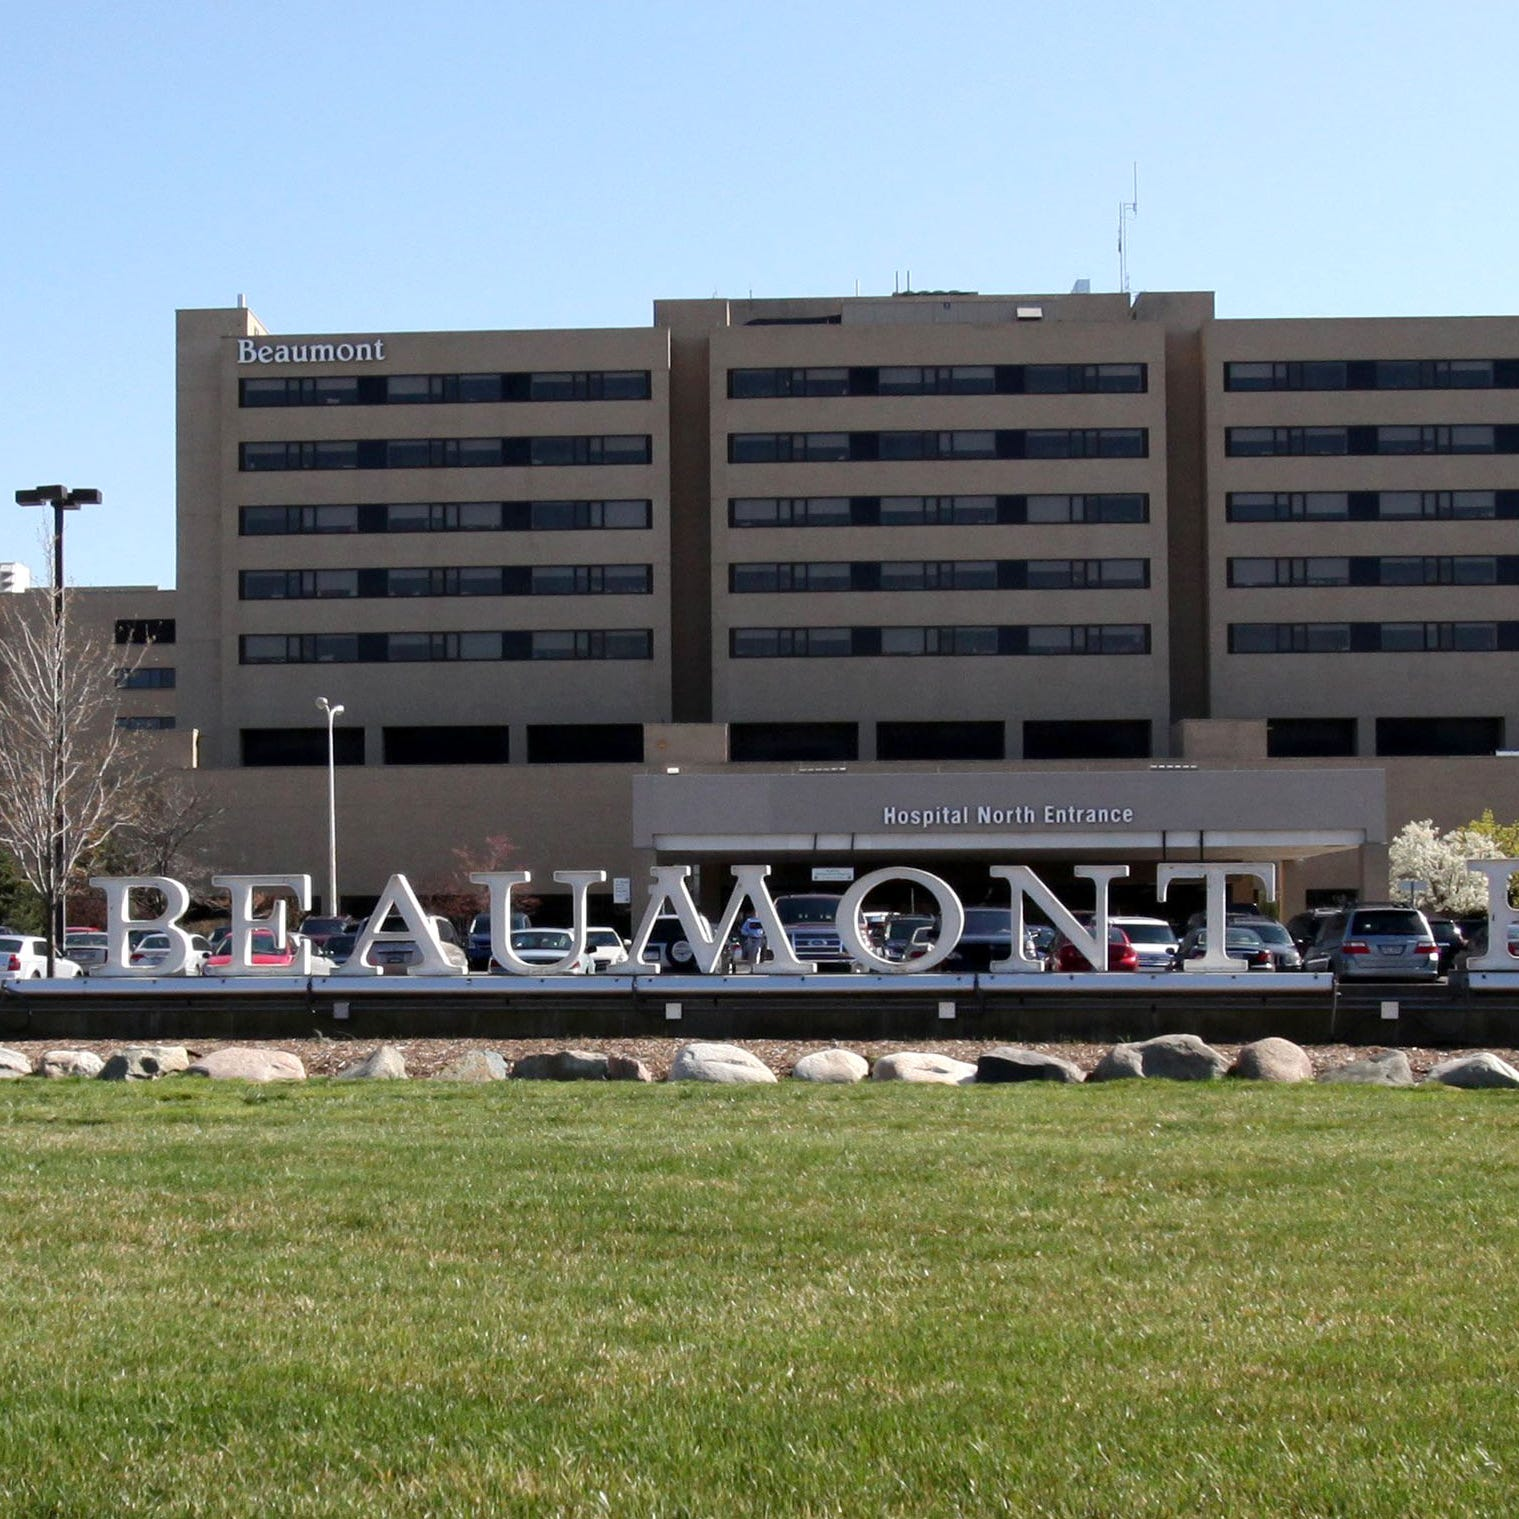 Beaumont leads Henry Ford Health in race to build hospital in Oxford